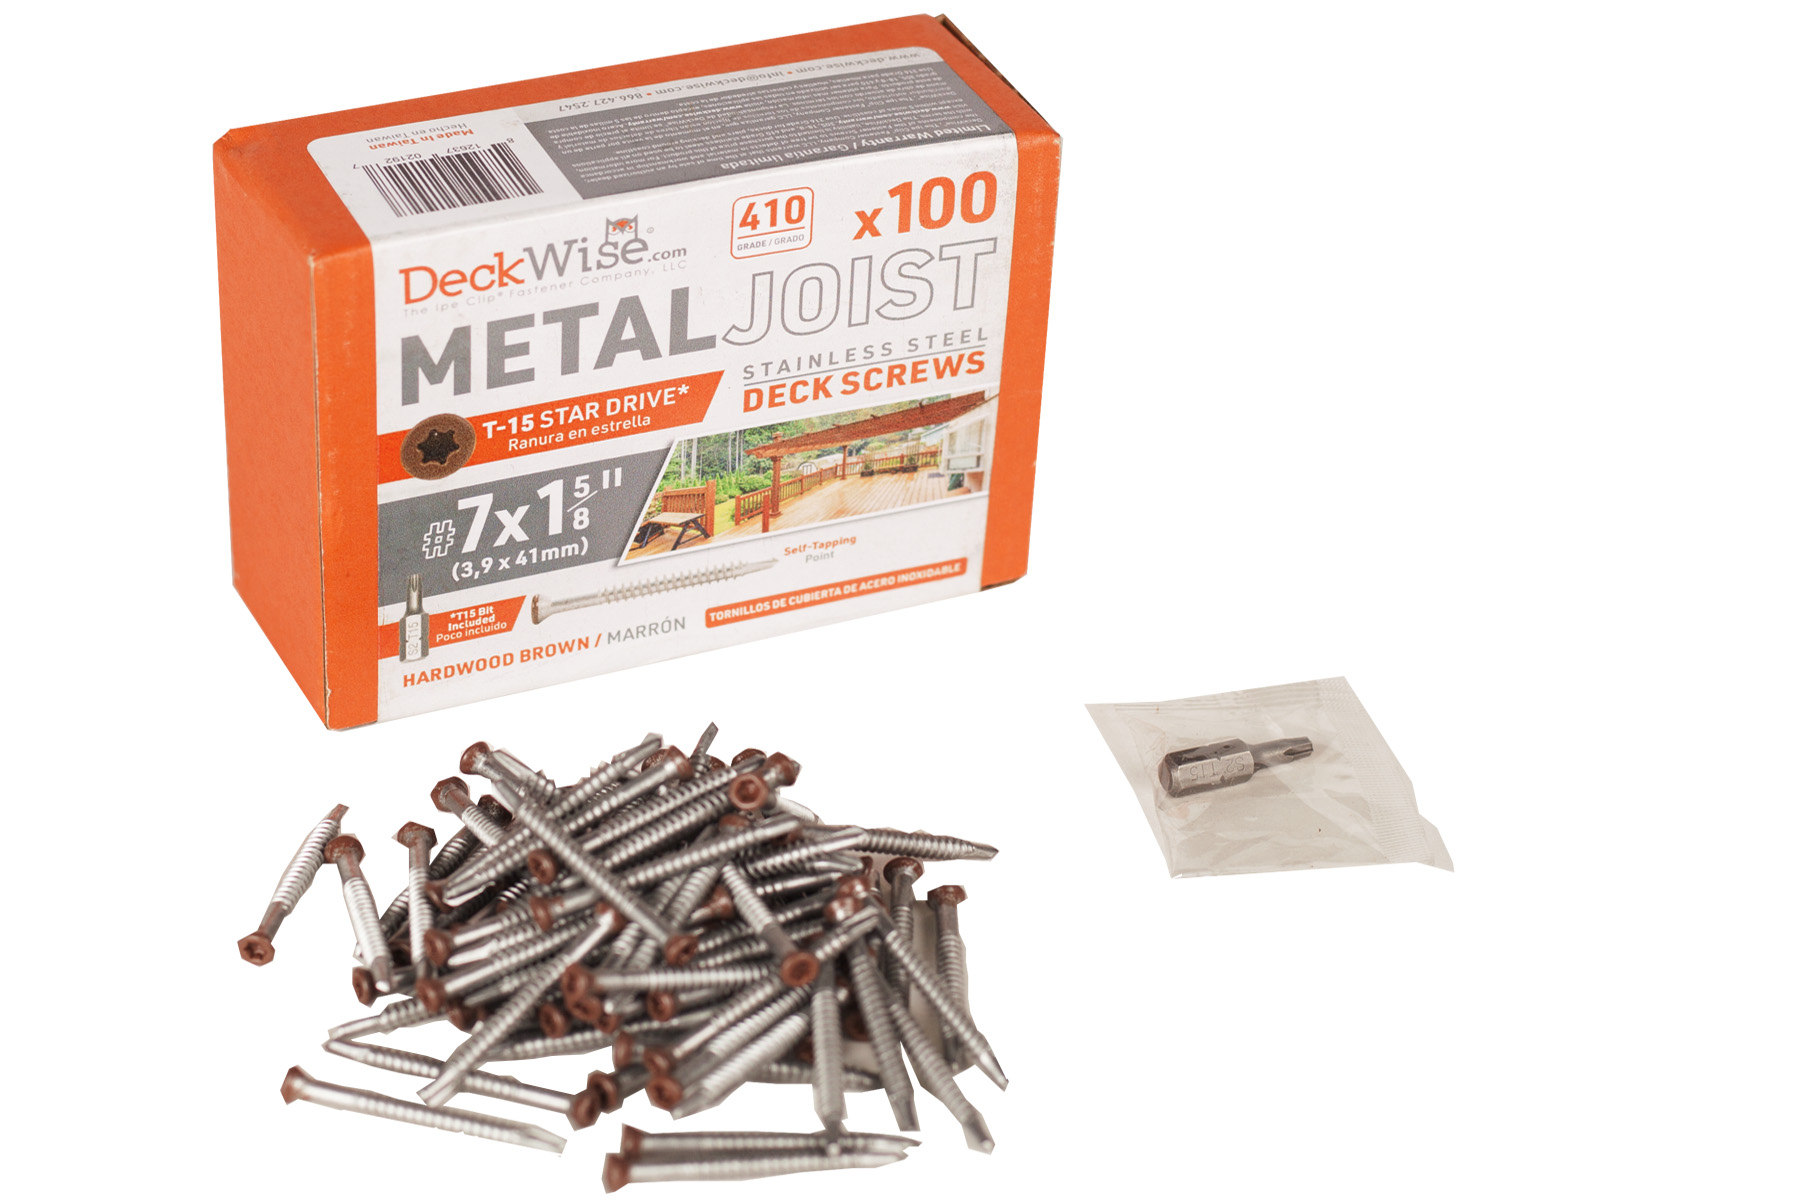 DeckWise #7x1-5//8 Self-Tapping Screws for Metal Joists of Decking Ft 350 Pack 410 Stainless Steel T15 Deck Screws Cover 100 Sq